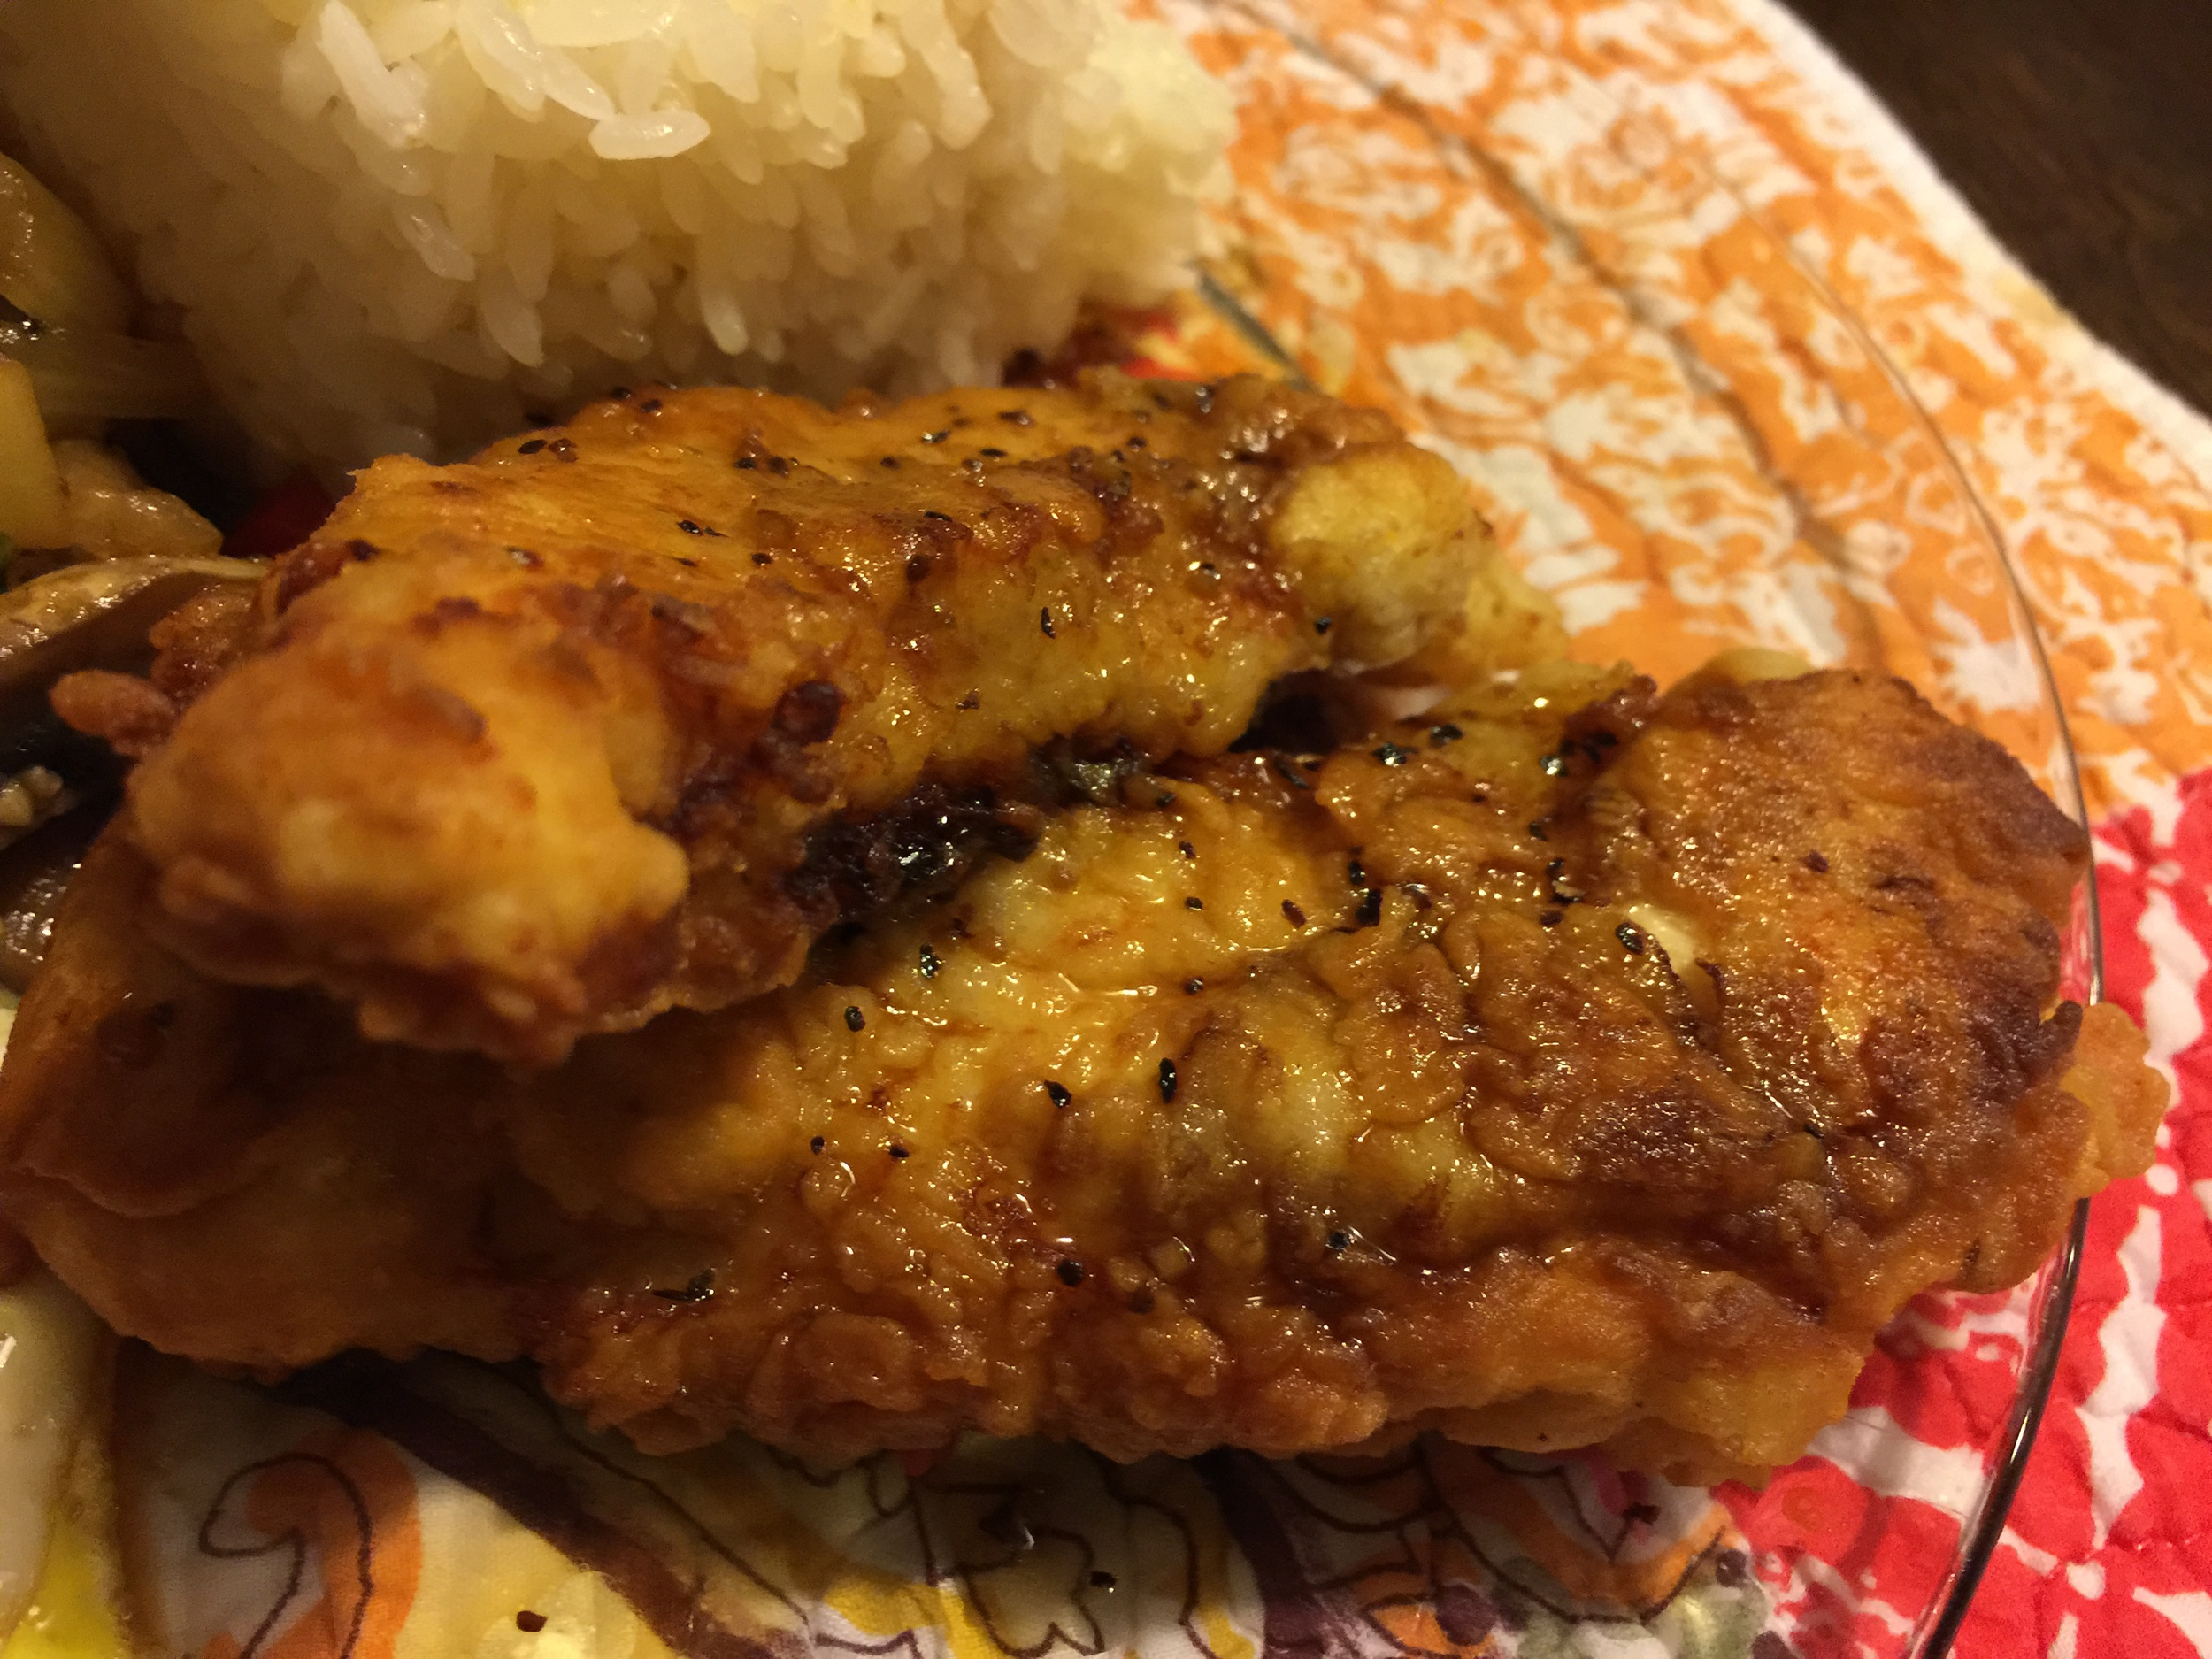 4. Asian Lemon Chicken Tenders